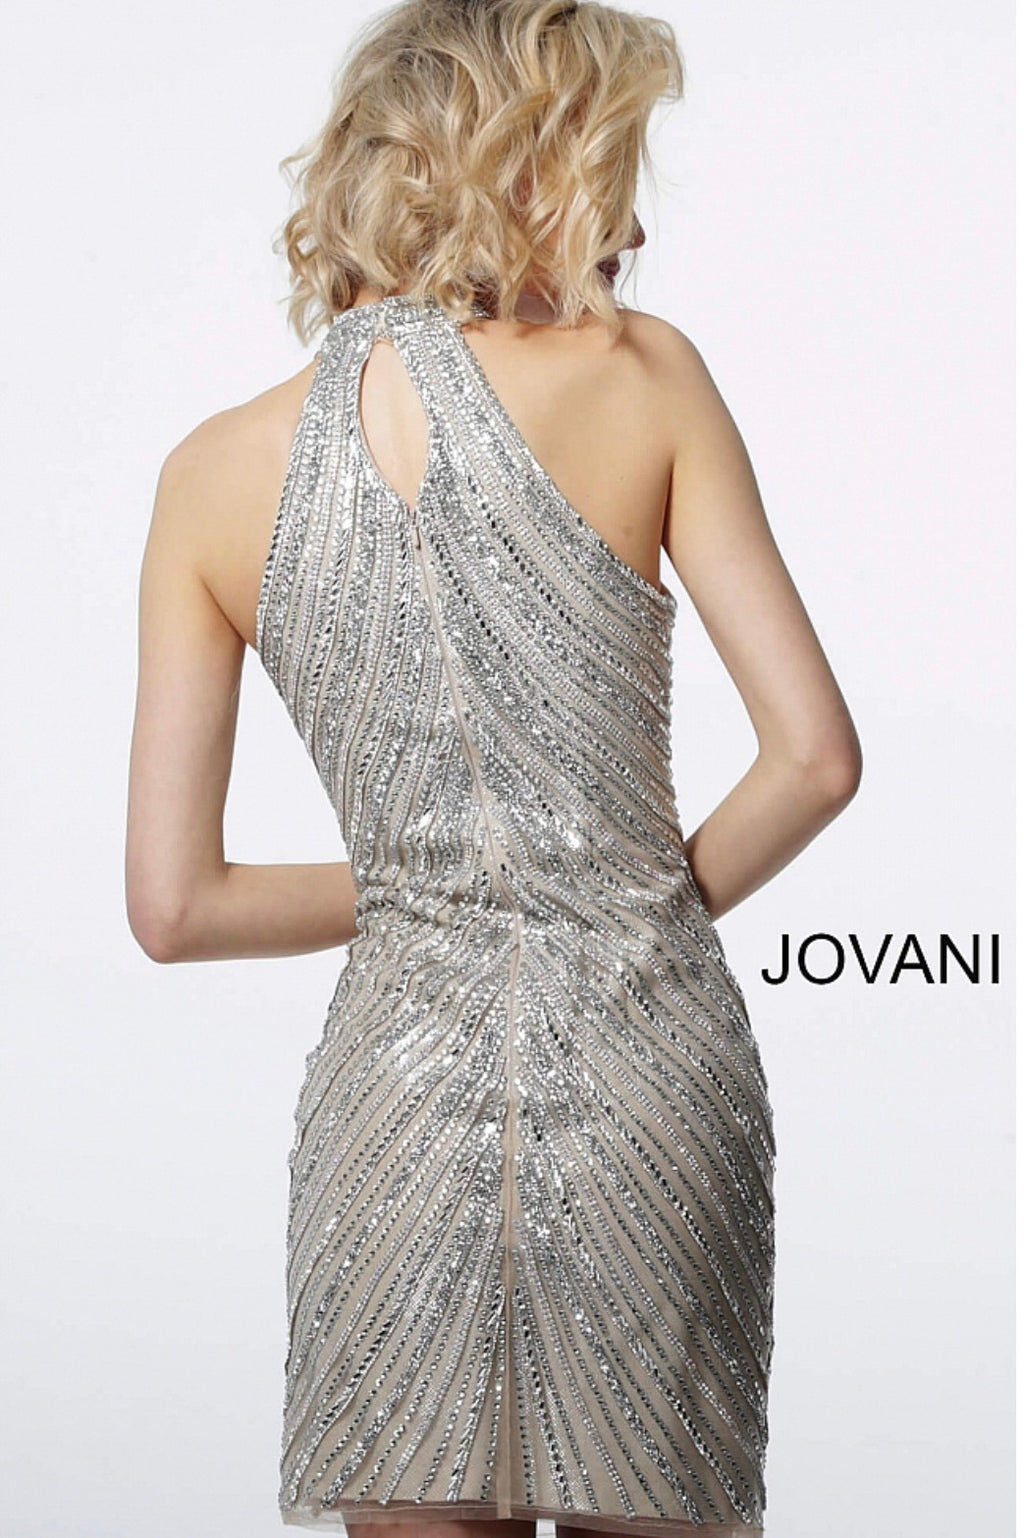 JOVANI 3834 Embellished Halter Neck Dress